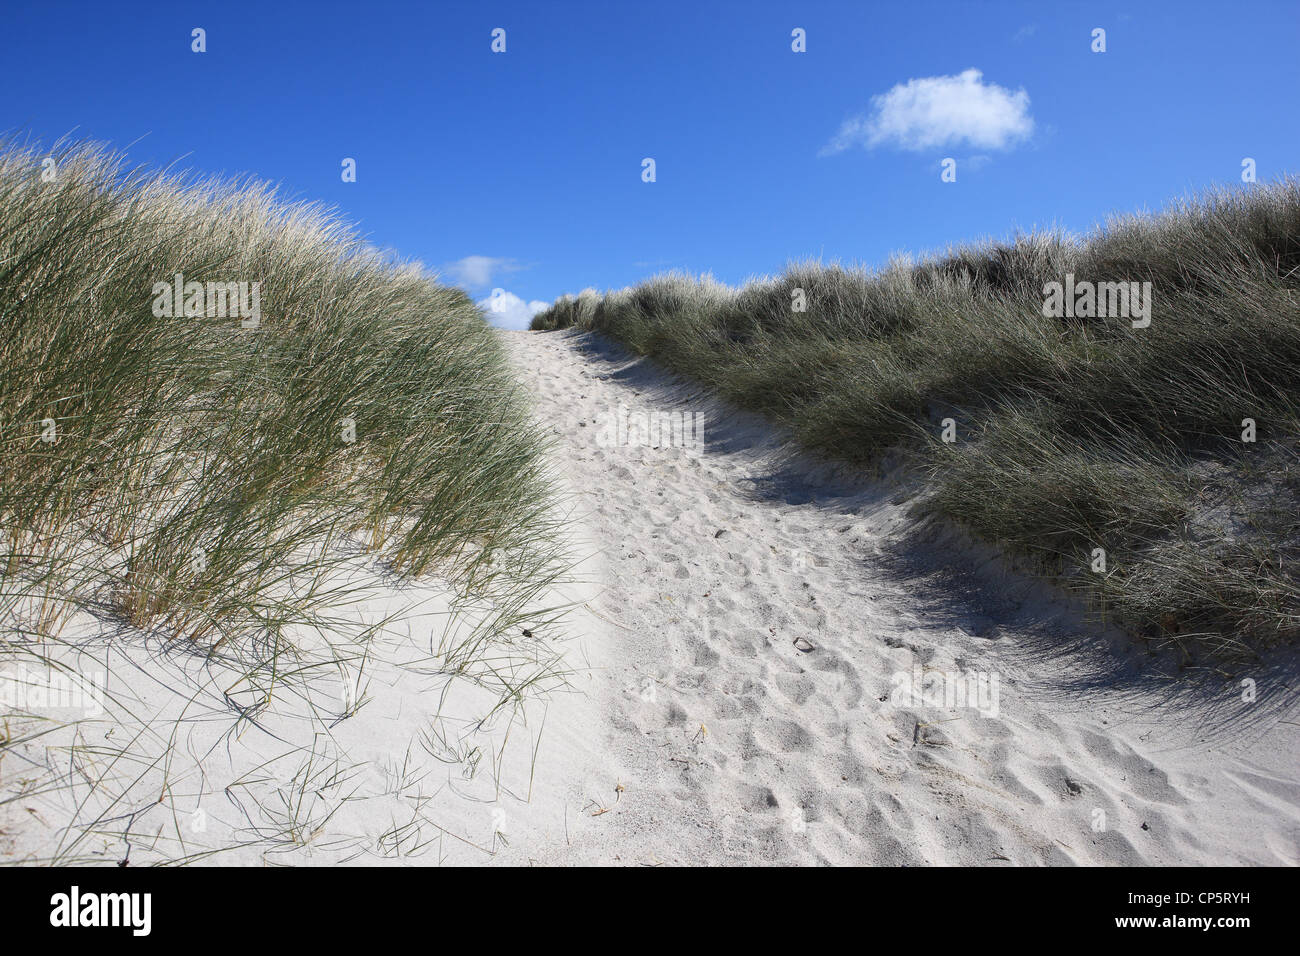 Sandy path with footprints, bordered by marram grass, leading away from the beach - Stock Image